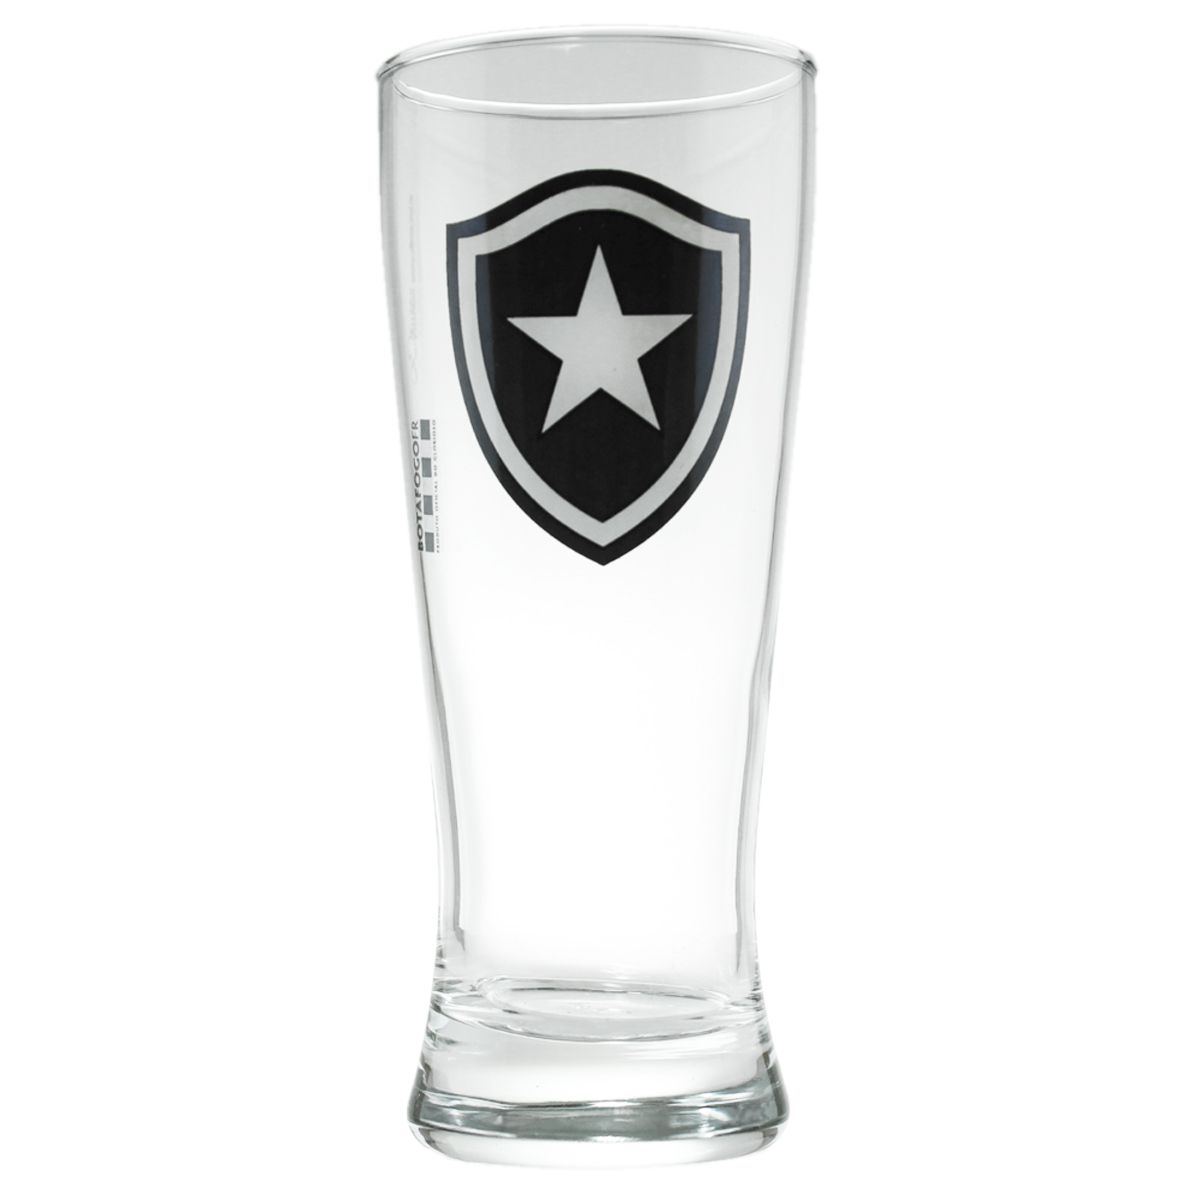 Copo de Chopp do Botafogo 300 ml